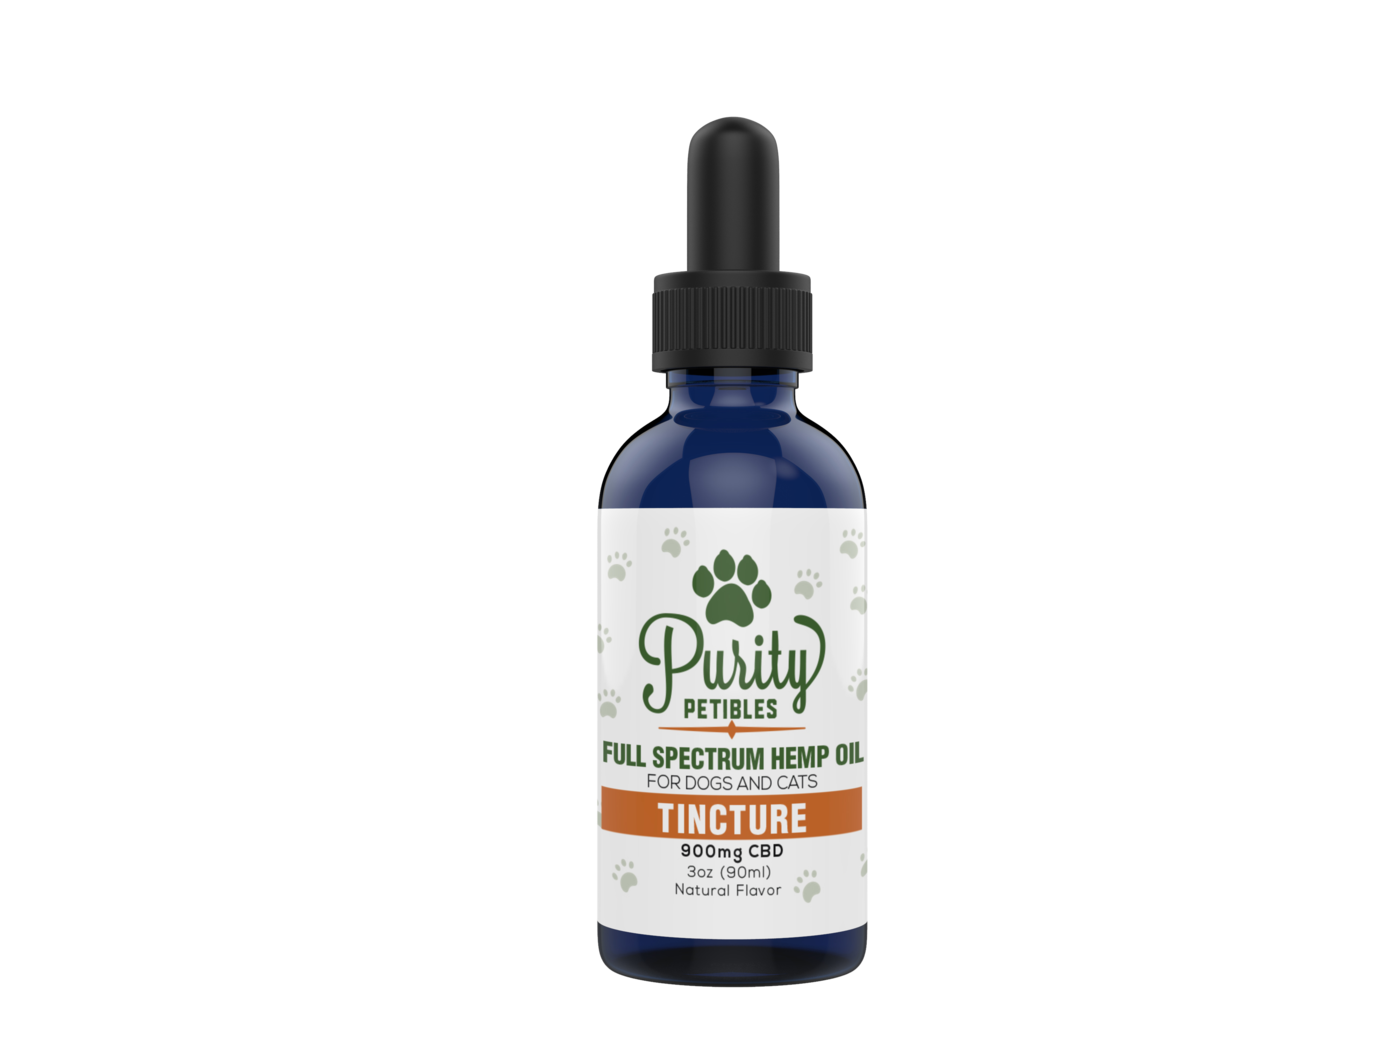 FULL SPECTRUM HEMP OIL PET CBD TINCTURE 900MG Purity Petibles